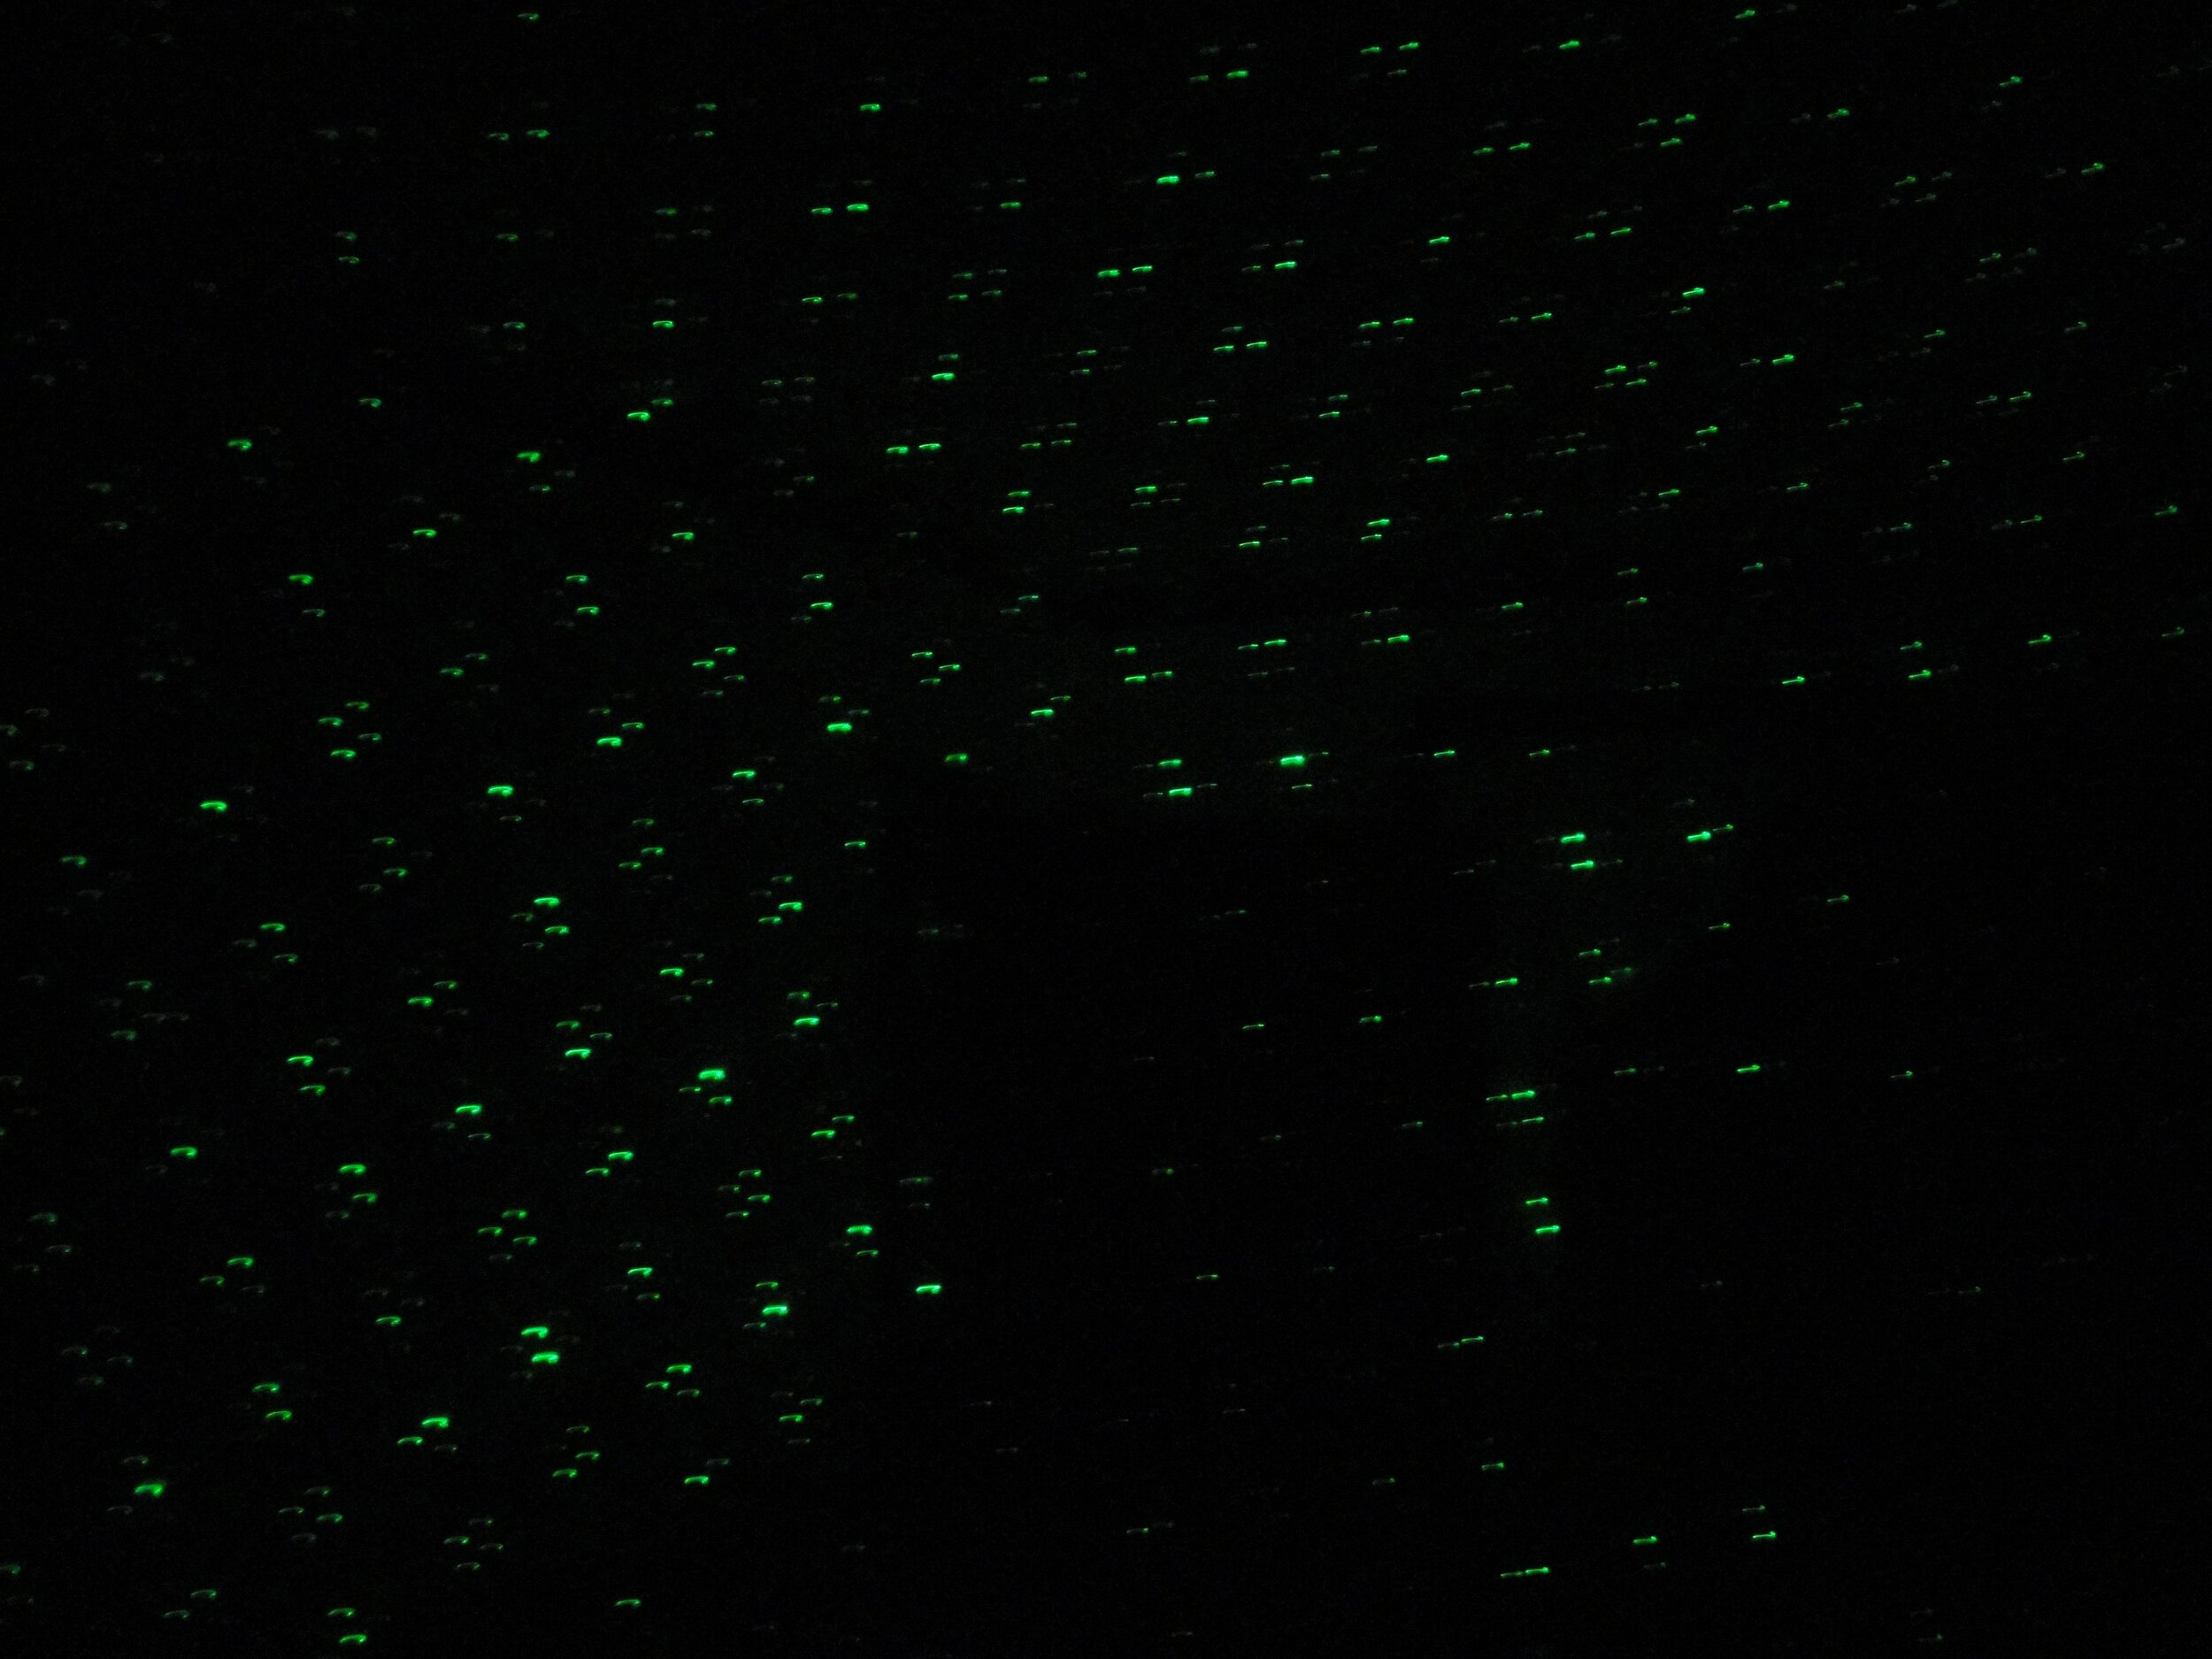 Anomaly in the laser light grid that appears to form the top half of a human shape, by blocking or absorbing the points of laser light.  Pointed at a staircase at the McKinnis-Litzenberg House.